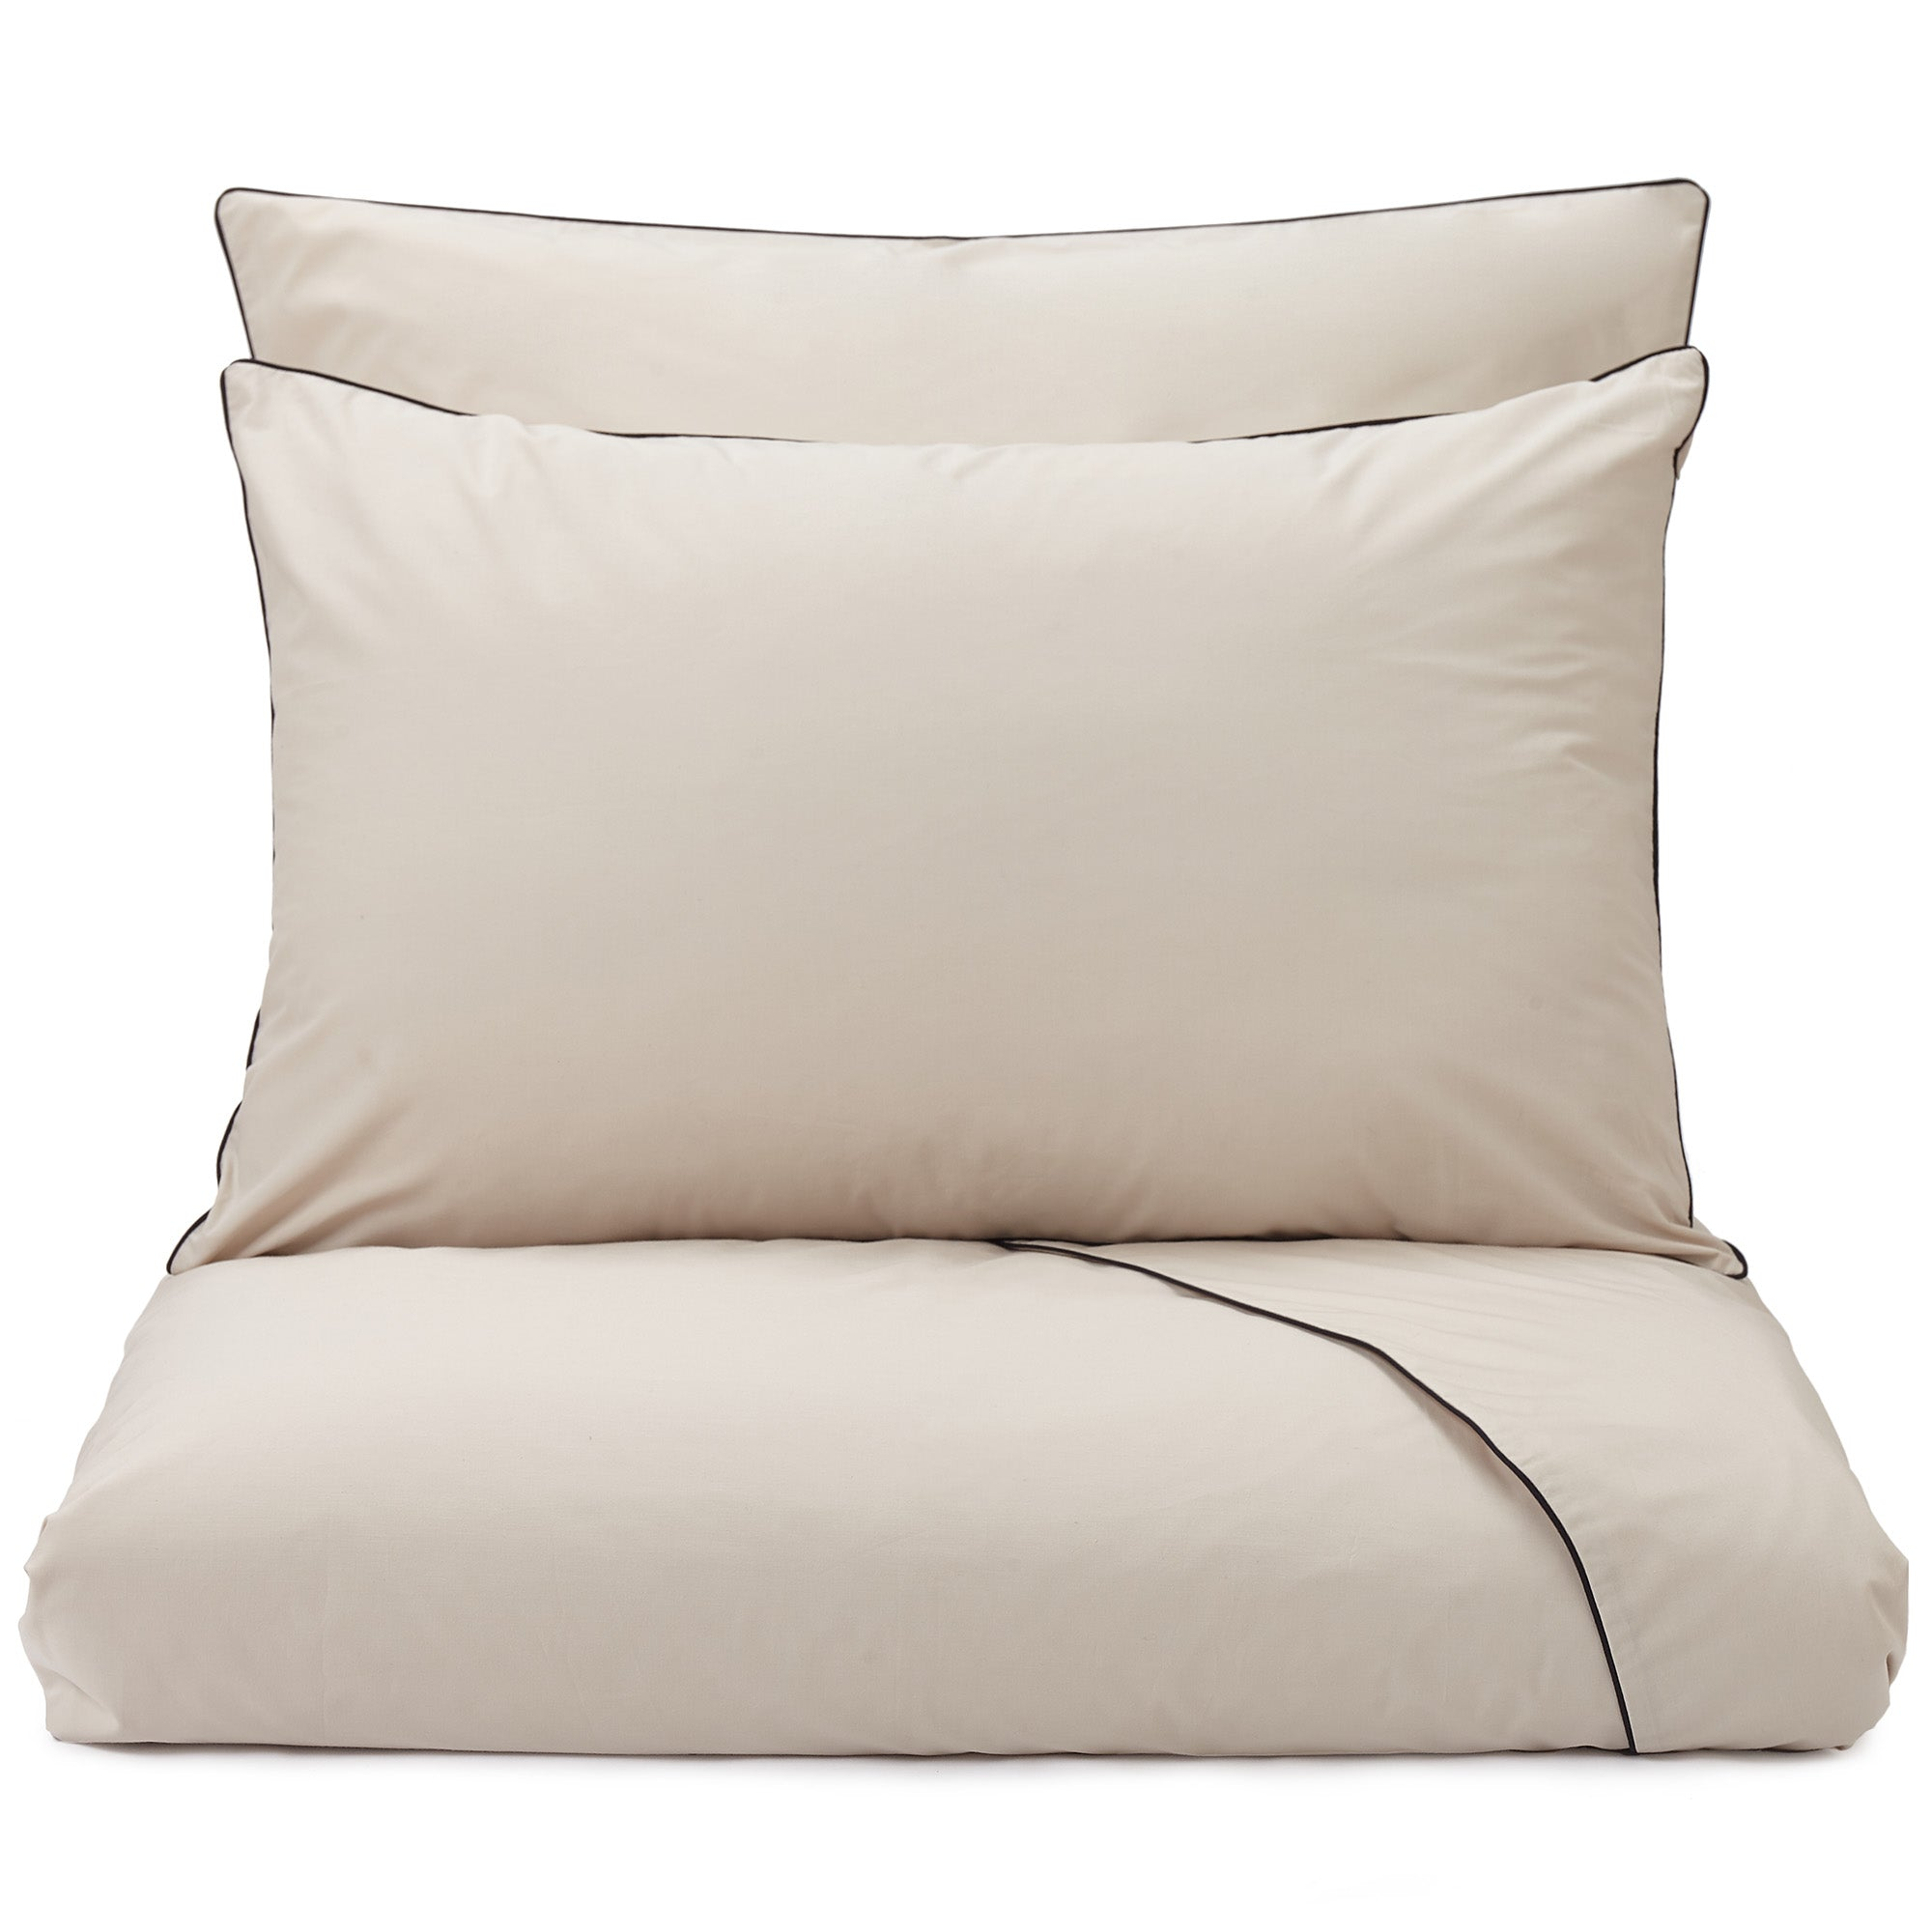 Vitero Pillowcase [Natural/Black]